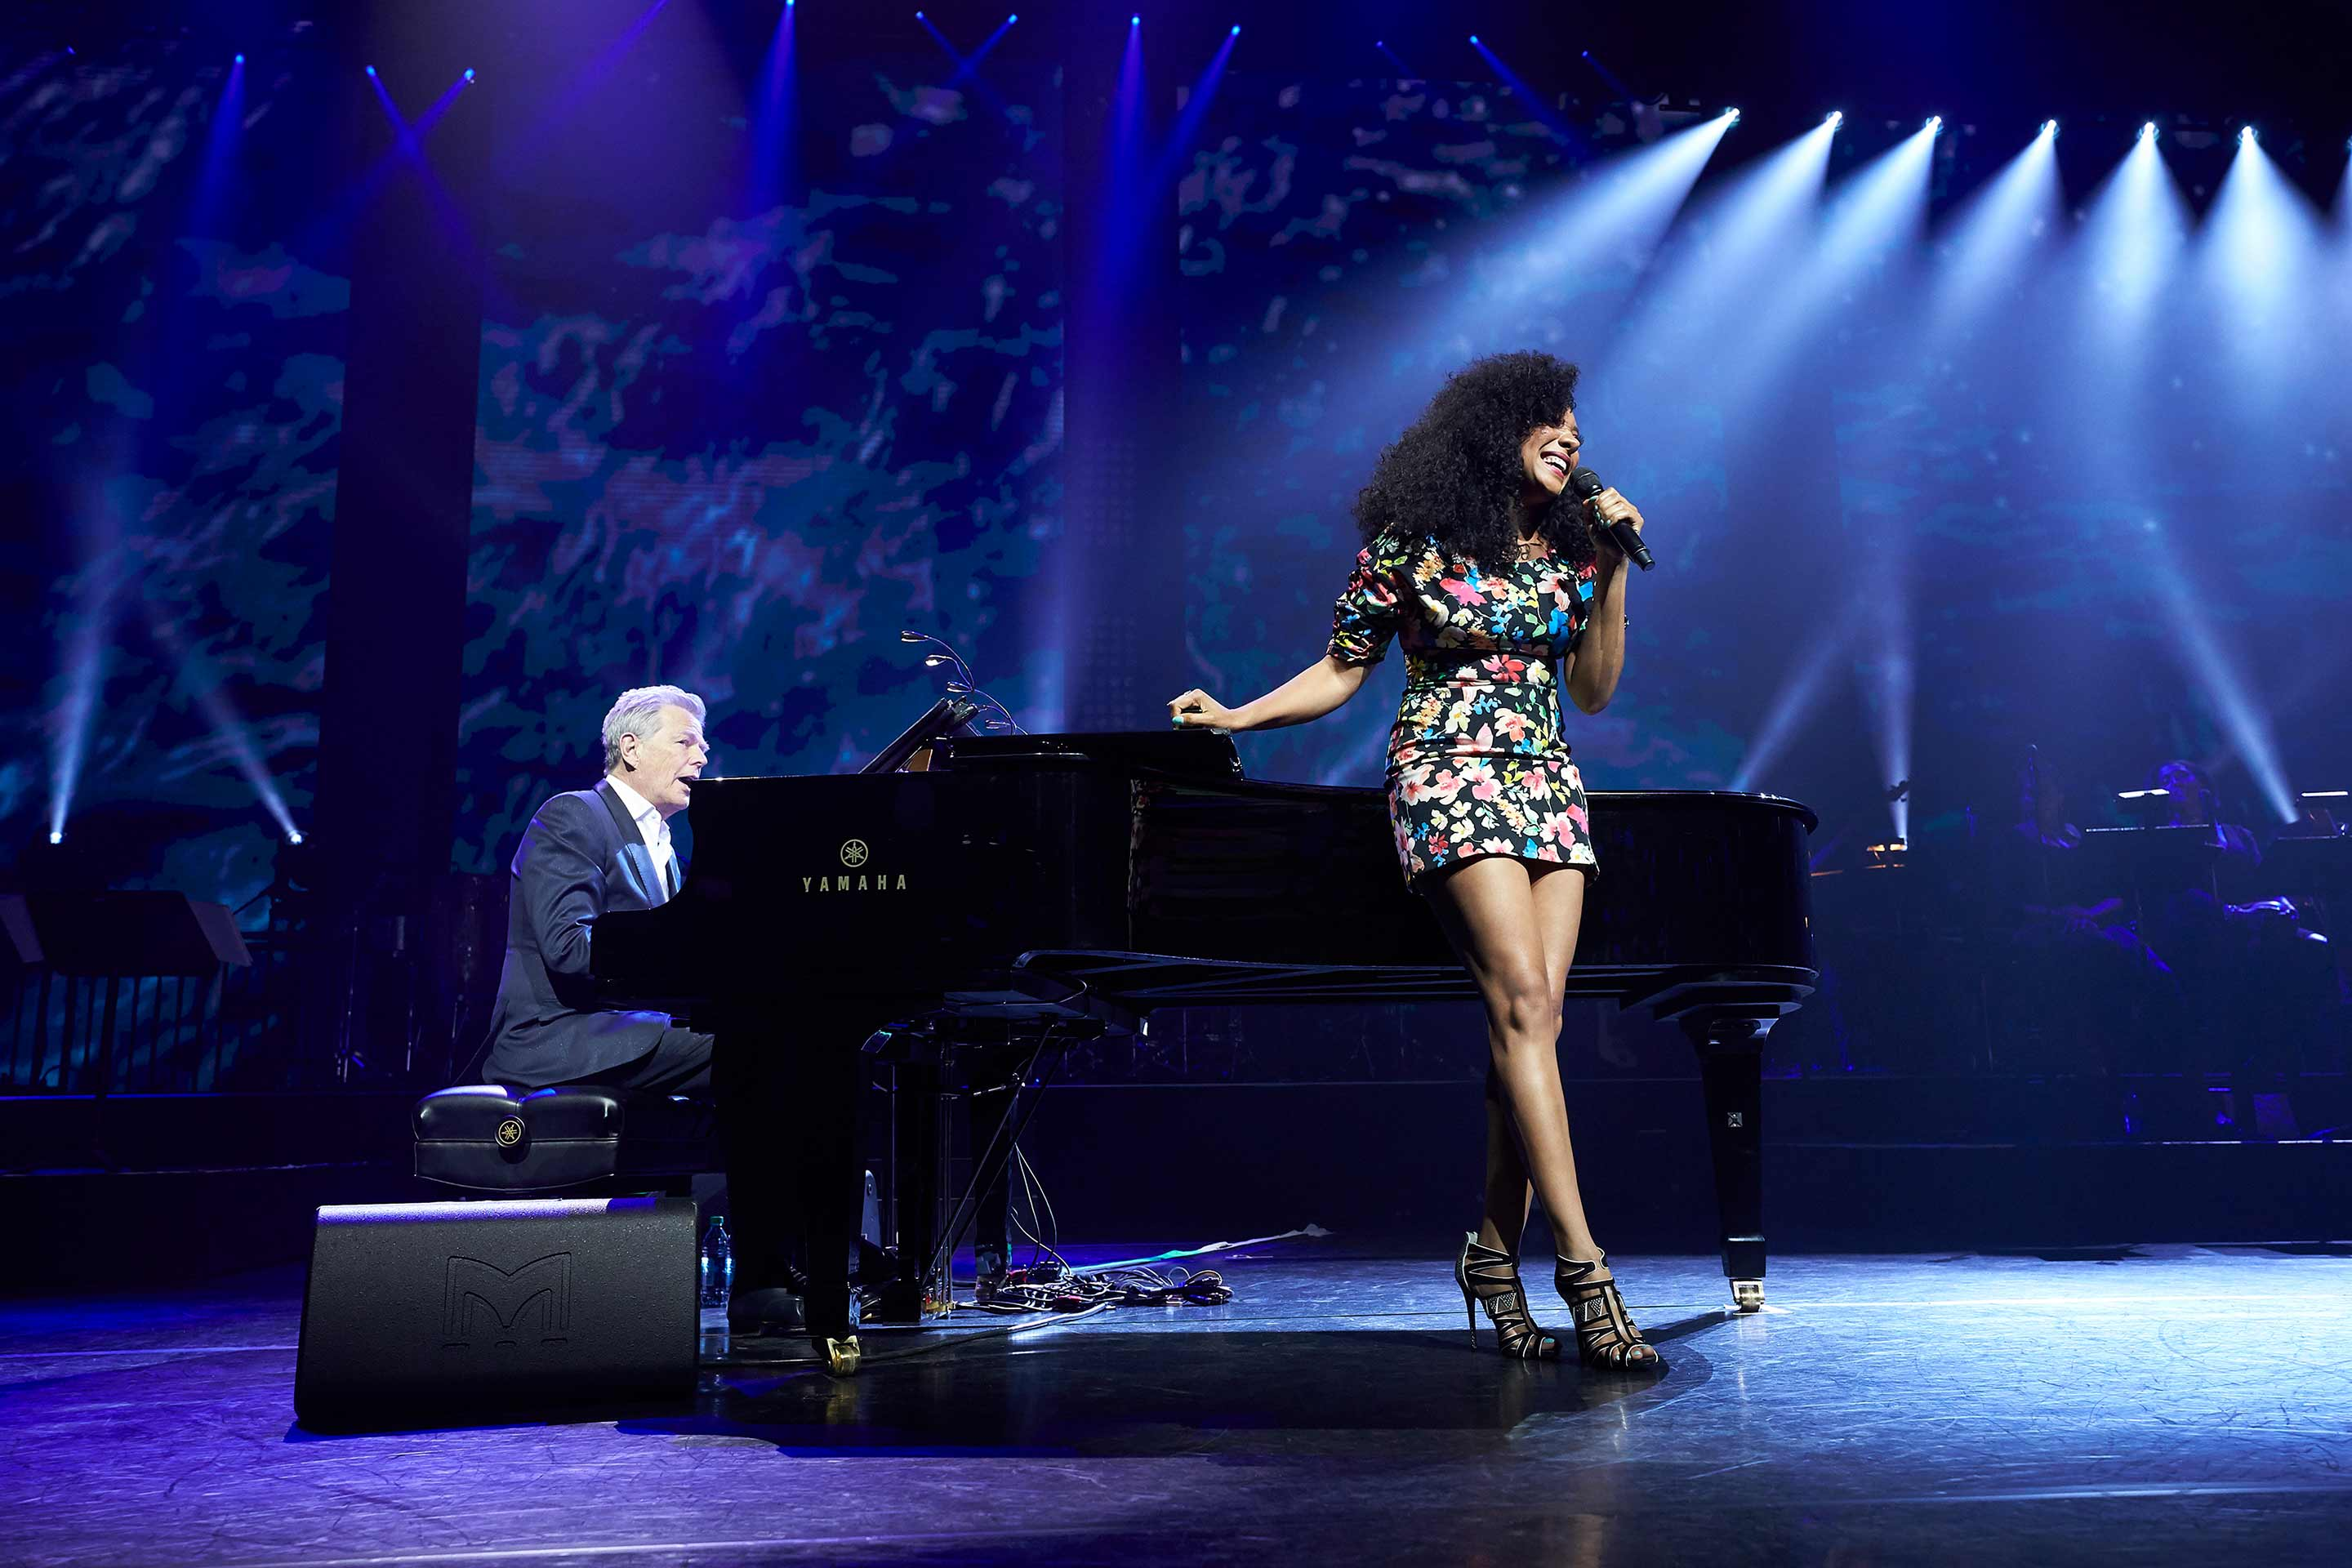 Shelea performing with David Foster at the closing concert